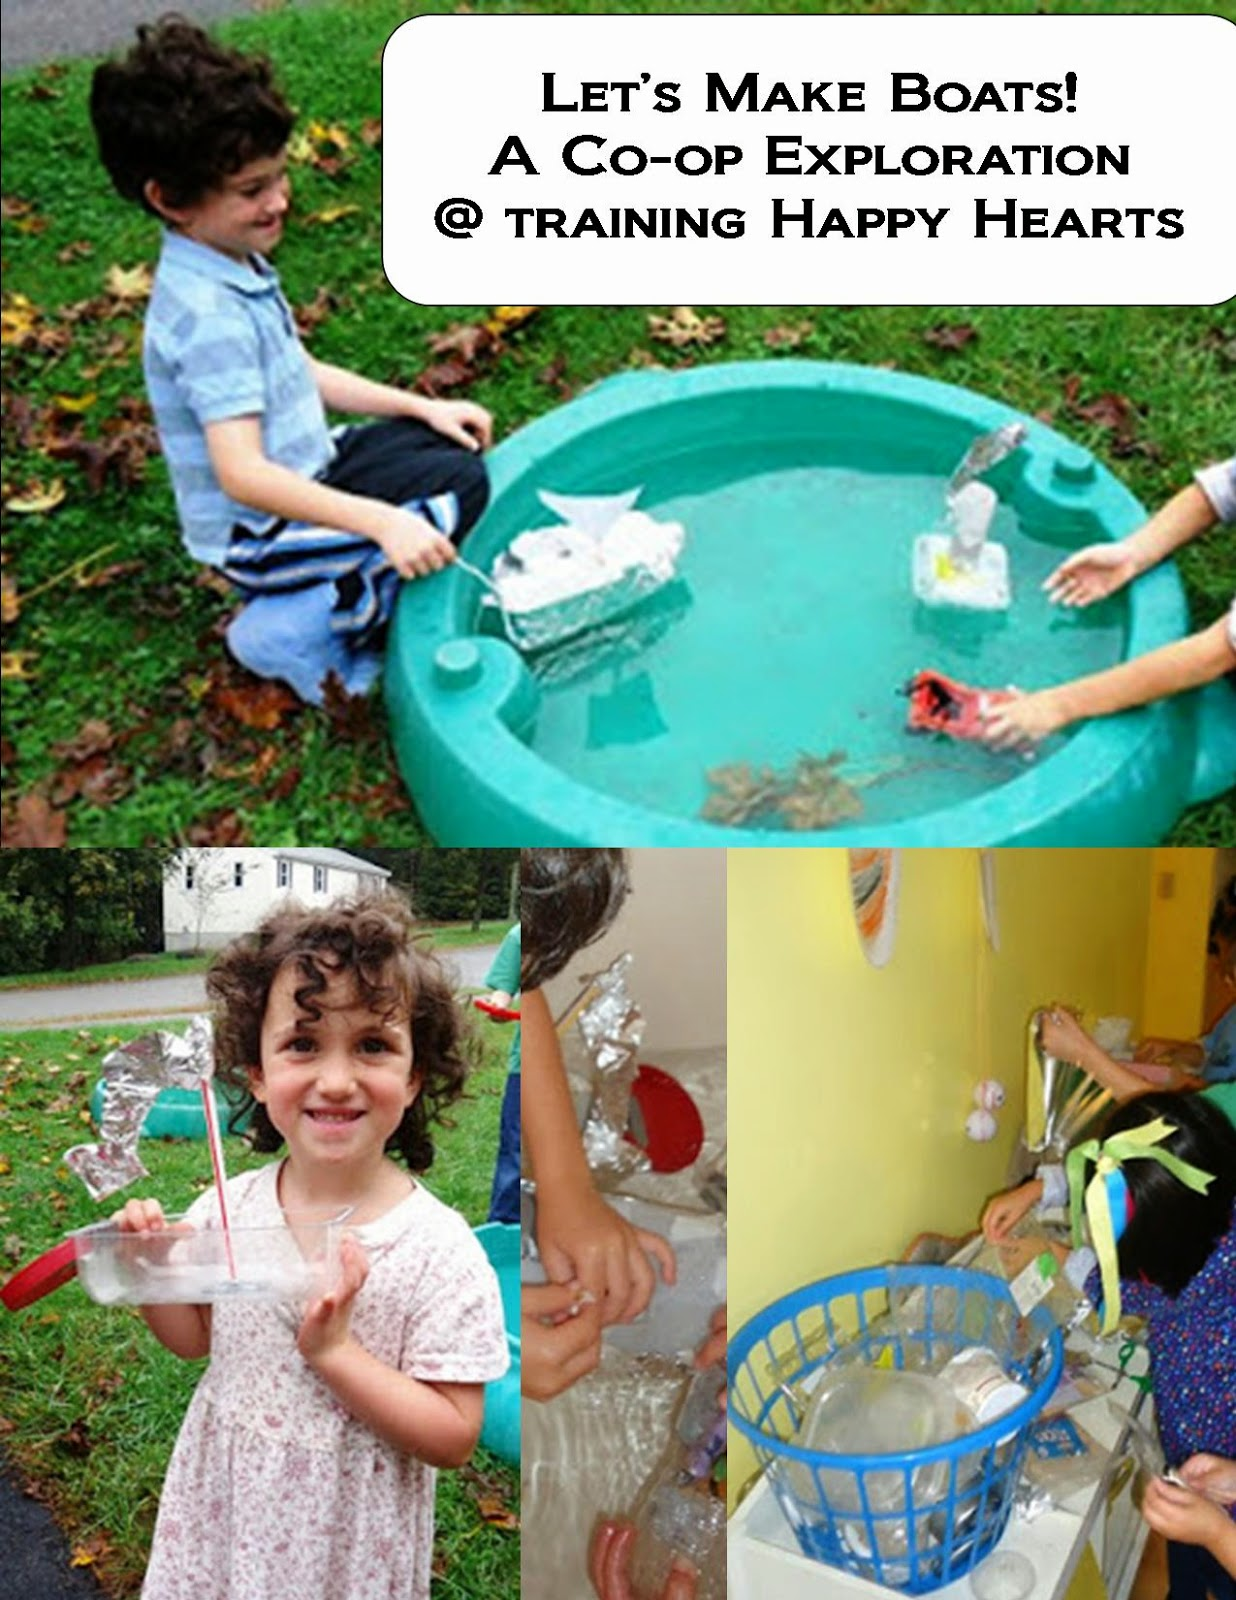 http://traininghappyhearts.blogspot.com/2011/10/boat-making-co-op-lesson.html